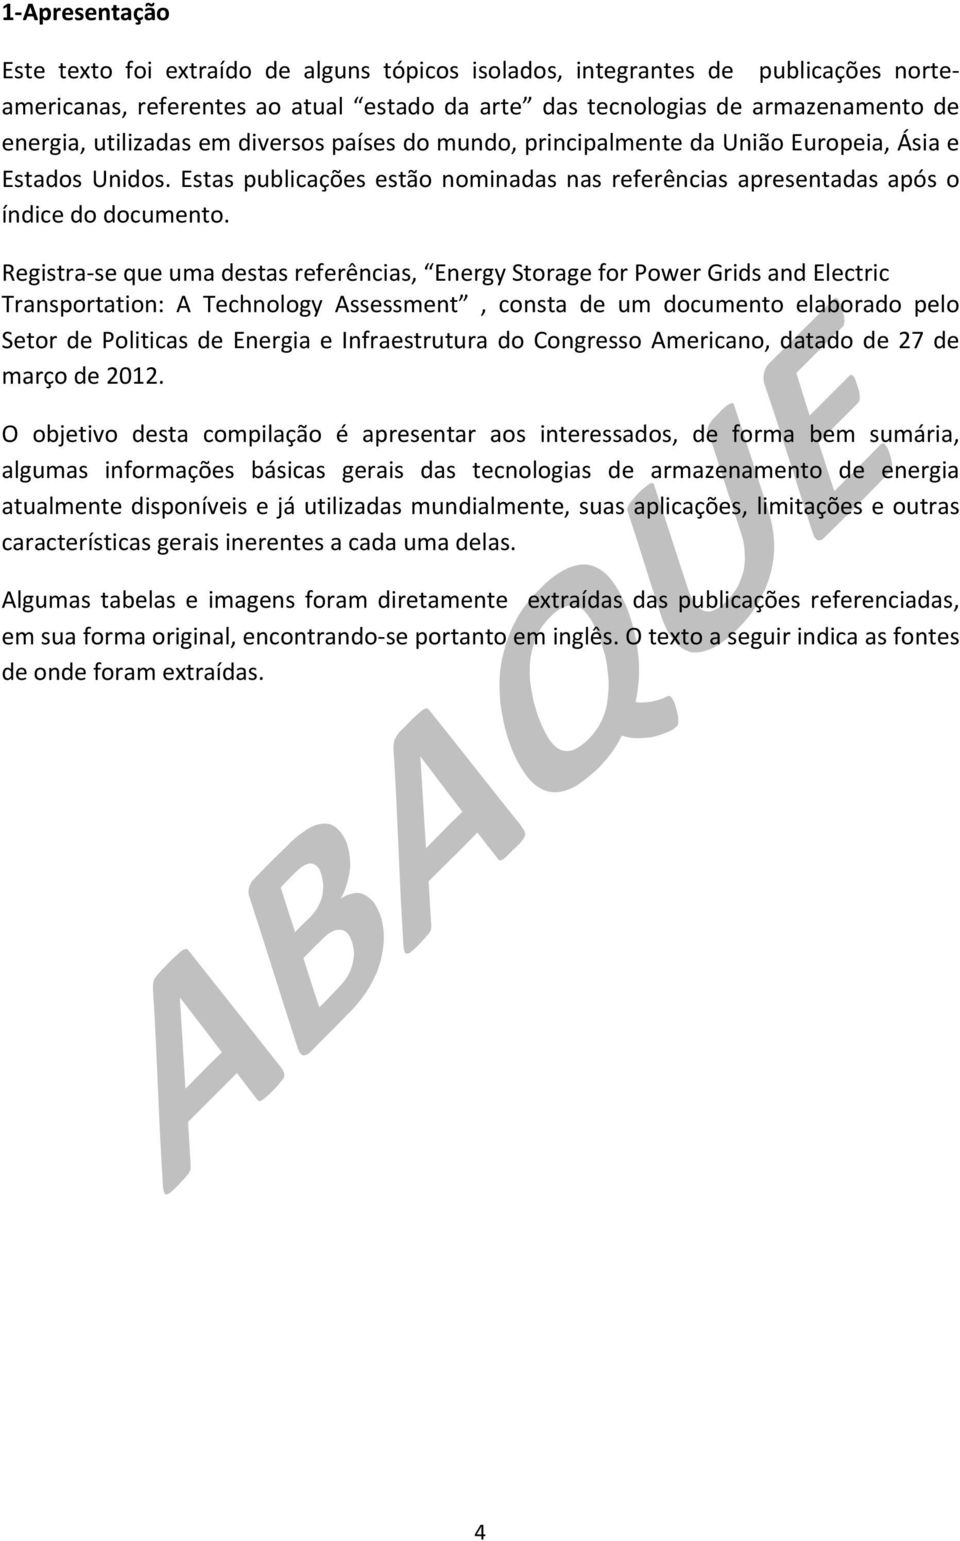 Registra- se que uma destas referências, Energy Storage for Power Grids and Electric Transportation: A Technology Assessment, consta de um documento elaborado pelo Setor de Politicas de Energia e